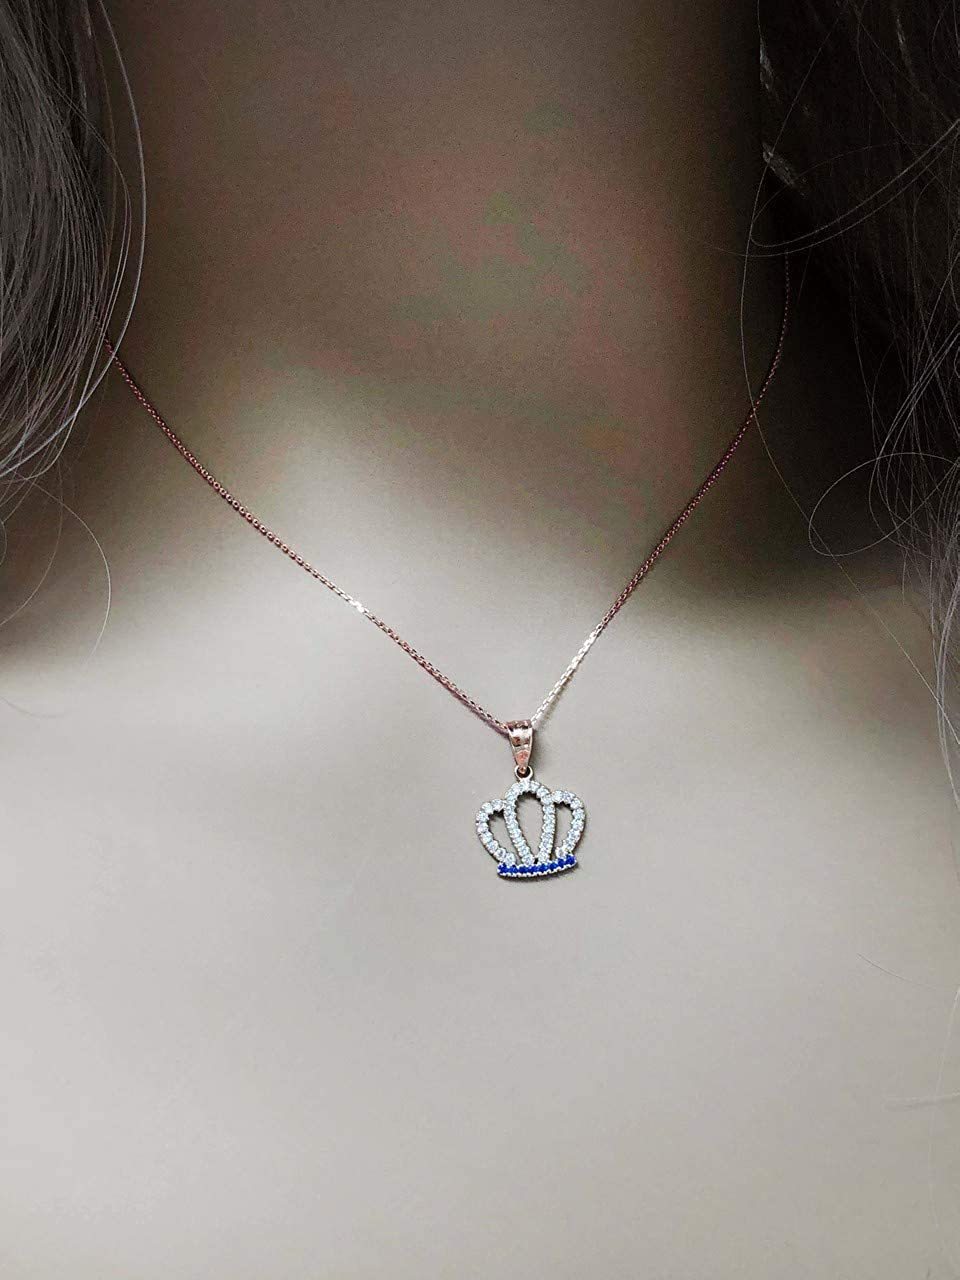 Exquisite 10k Rose Gold Radiant Blue and White CZ Royal Crown Pendant Necklace